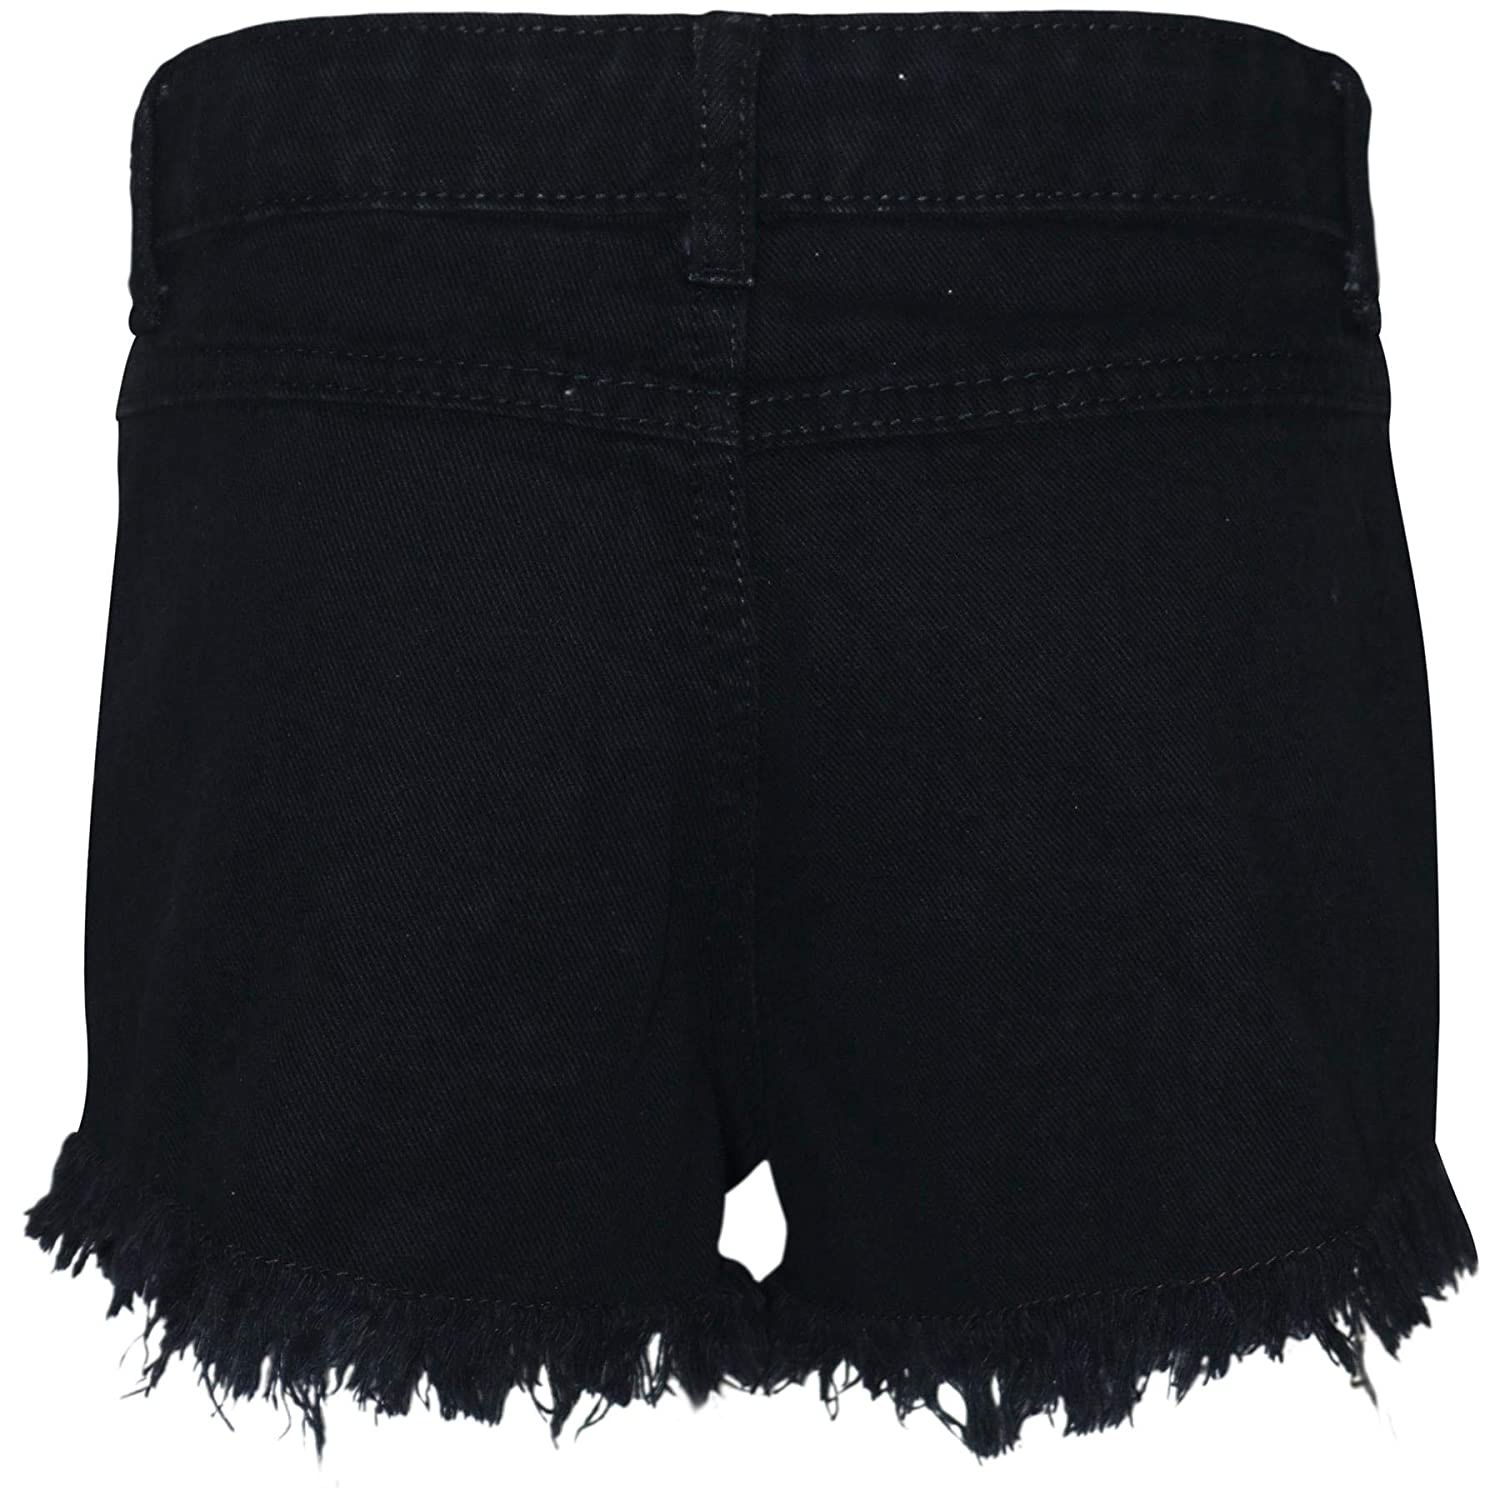 A2Z 4 Kdis Kids Girls Shorts Jet Black Bermuda Skinny Ripped Jeans Hot Pants Summer Denim Chino Short Casual Half Pant New Age 3 4 5 6 7 8 9 10 11 12 13 Years